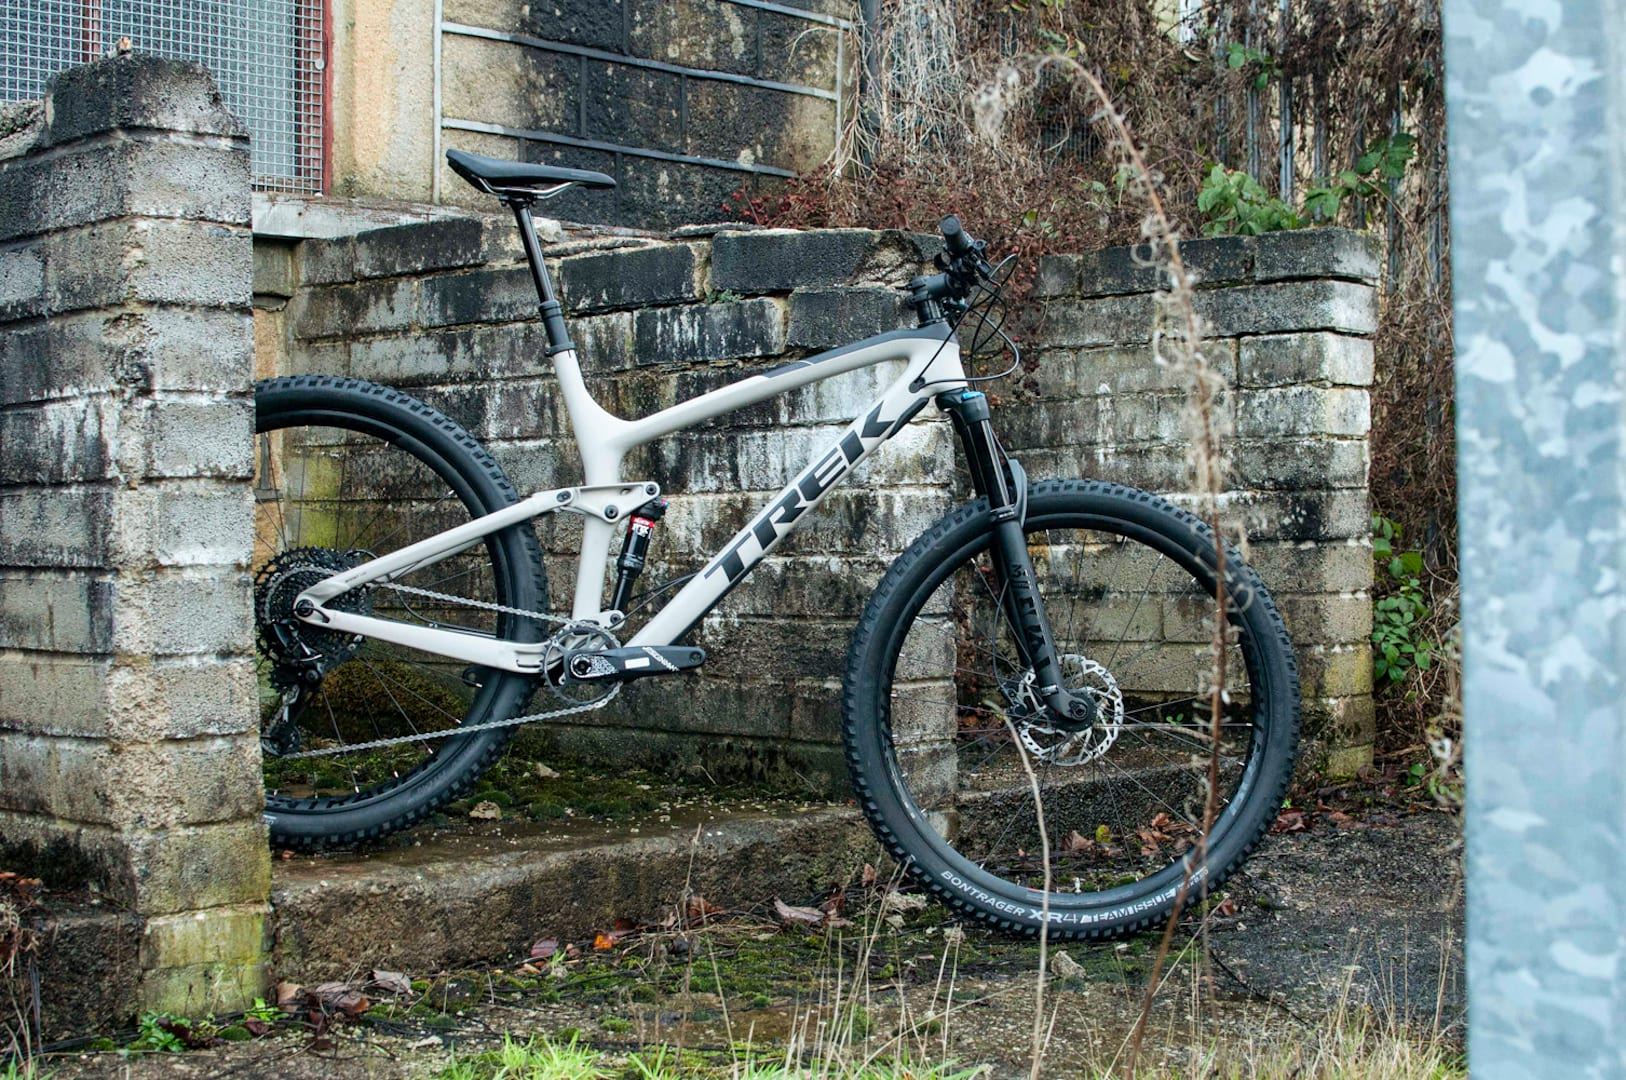 df27d65bdec First Look: Trek's 2019 Fuel EX 9.7 is a do-most-of-the-things bike ...